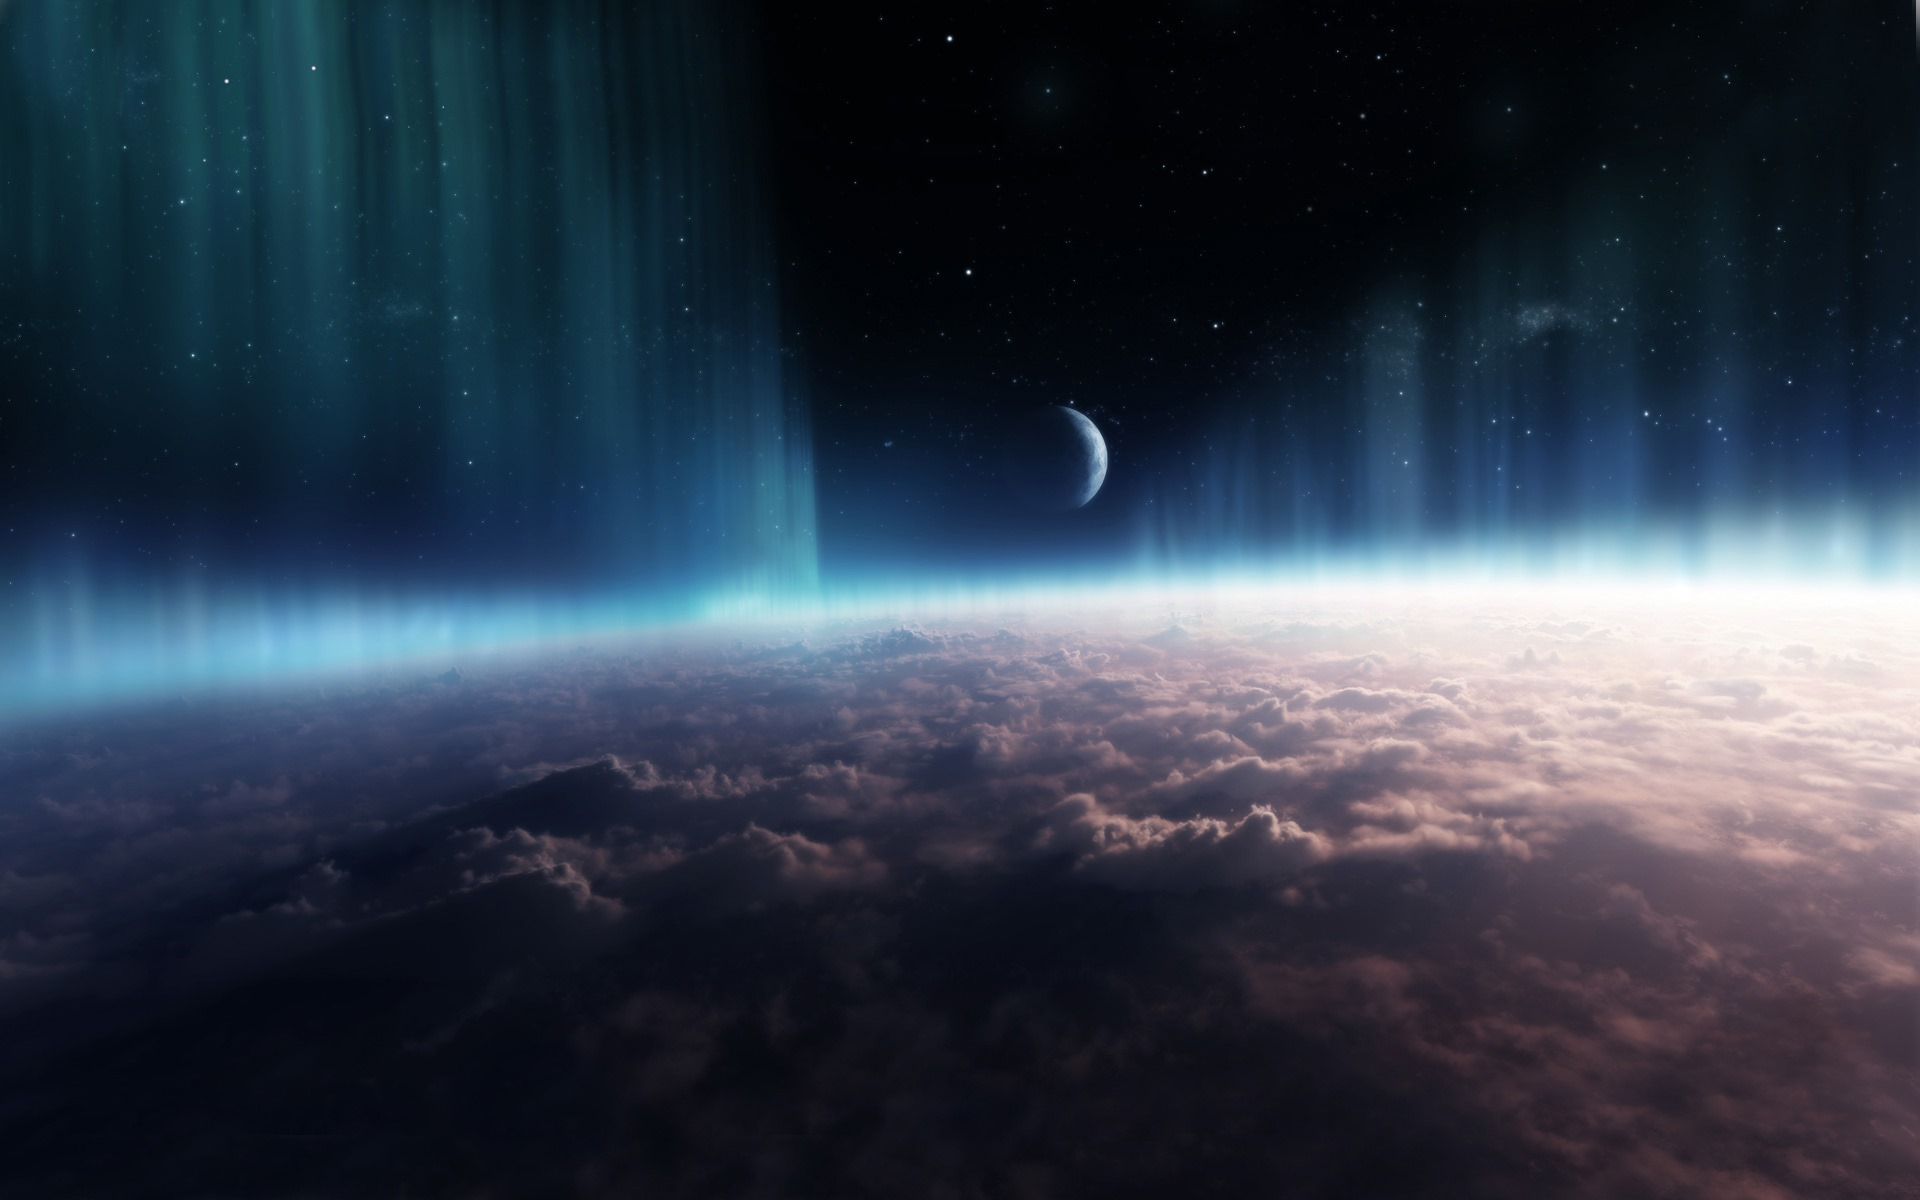 Space High Resolution Wallpapers 1920x1200